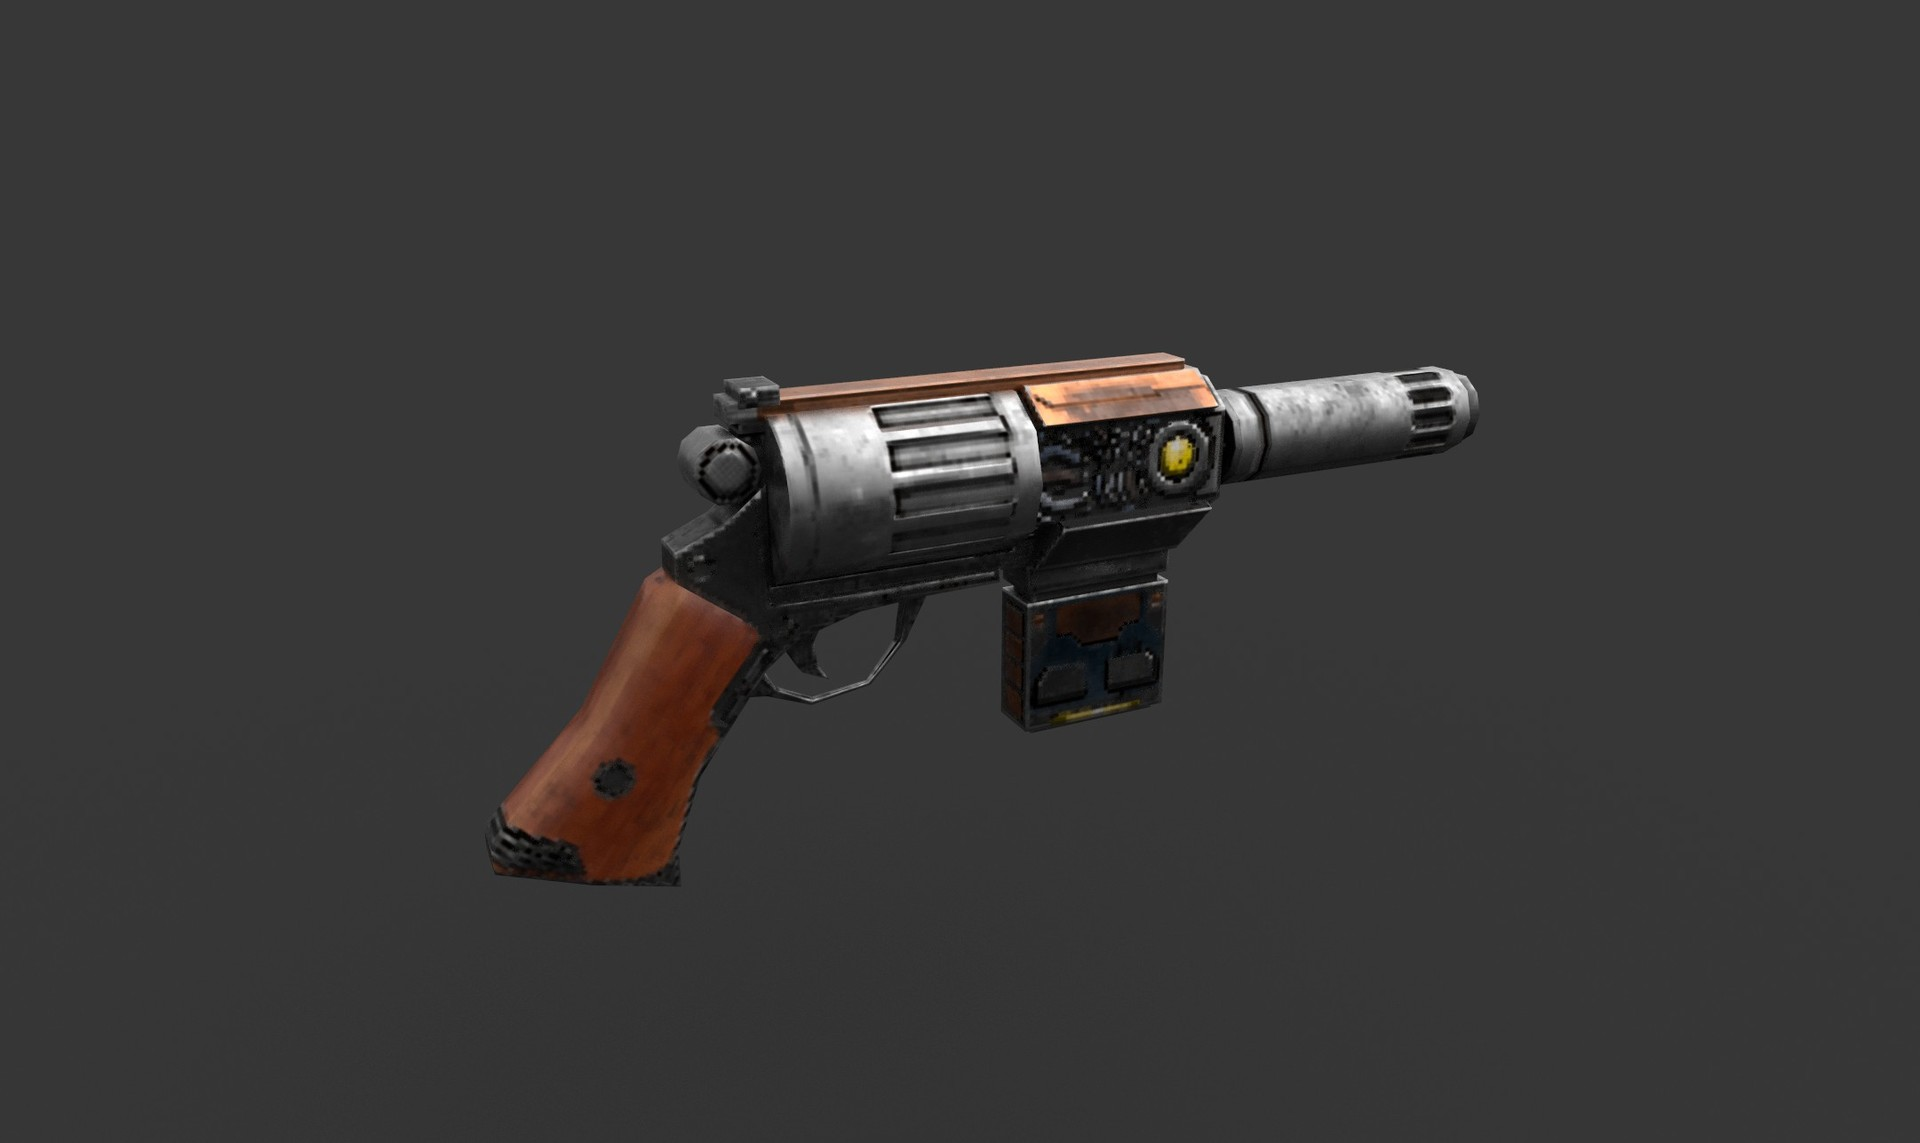 256x256 Textures Resolution Render. Approximate look of what will be in-game of SWG